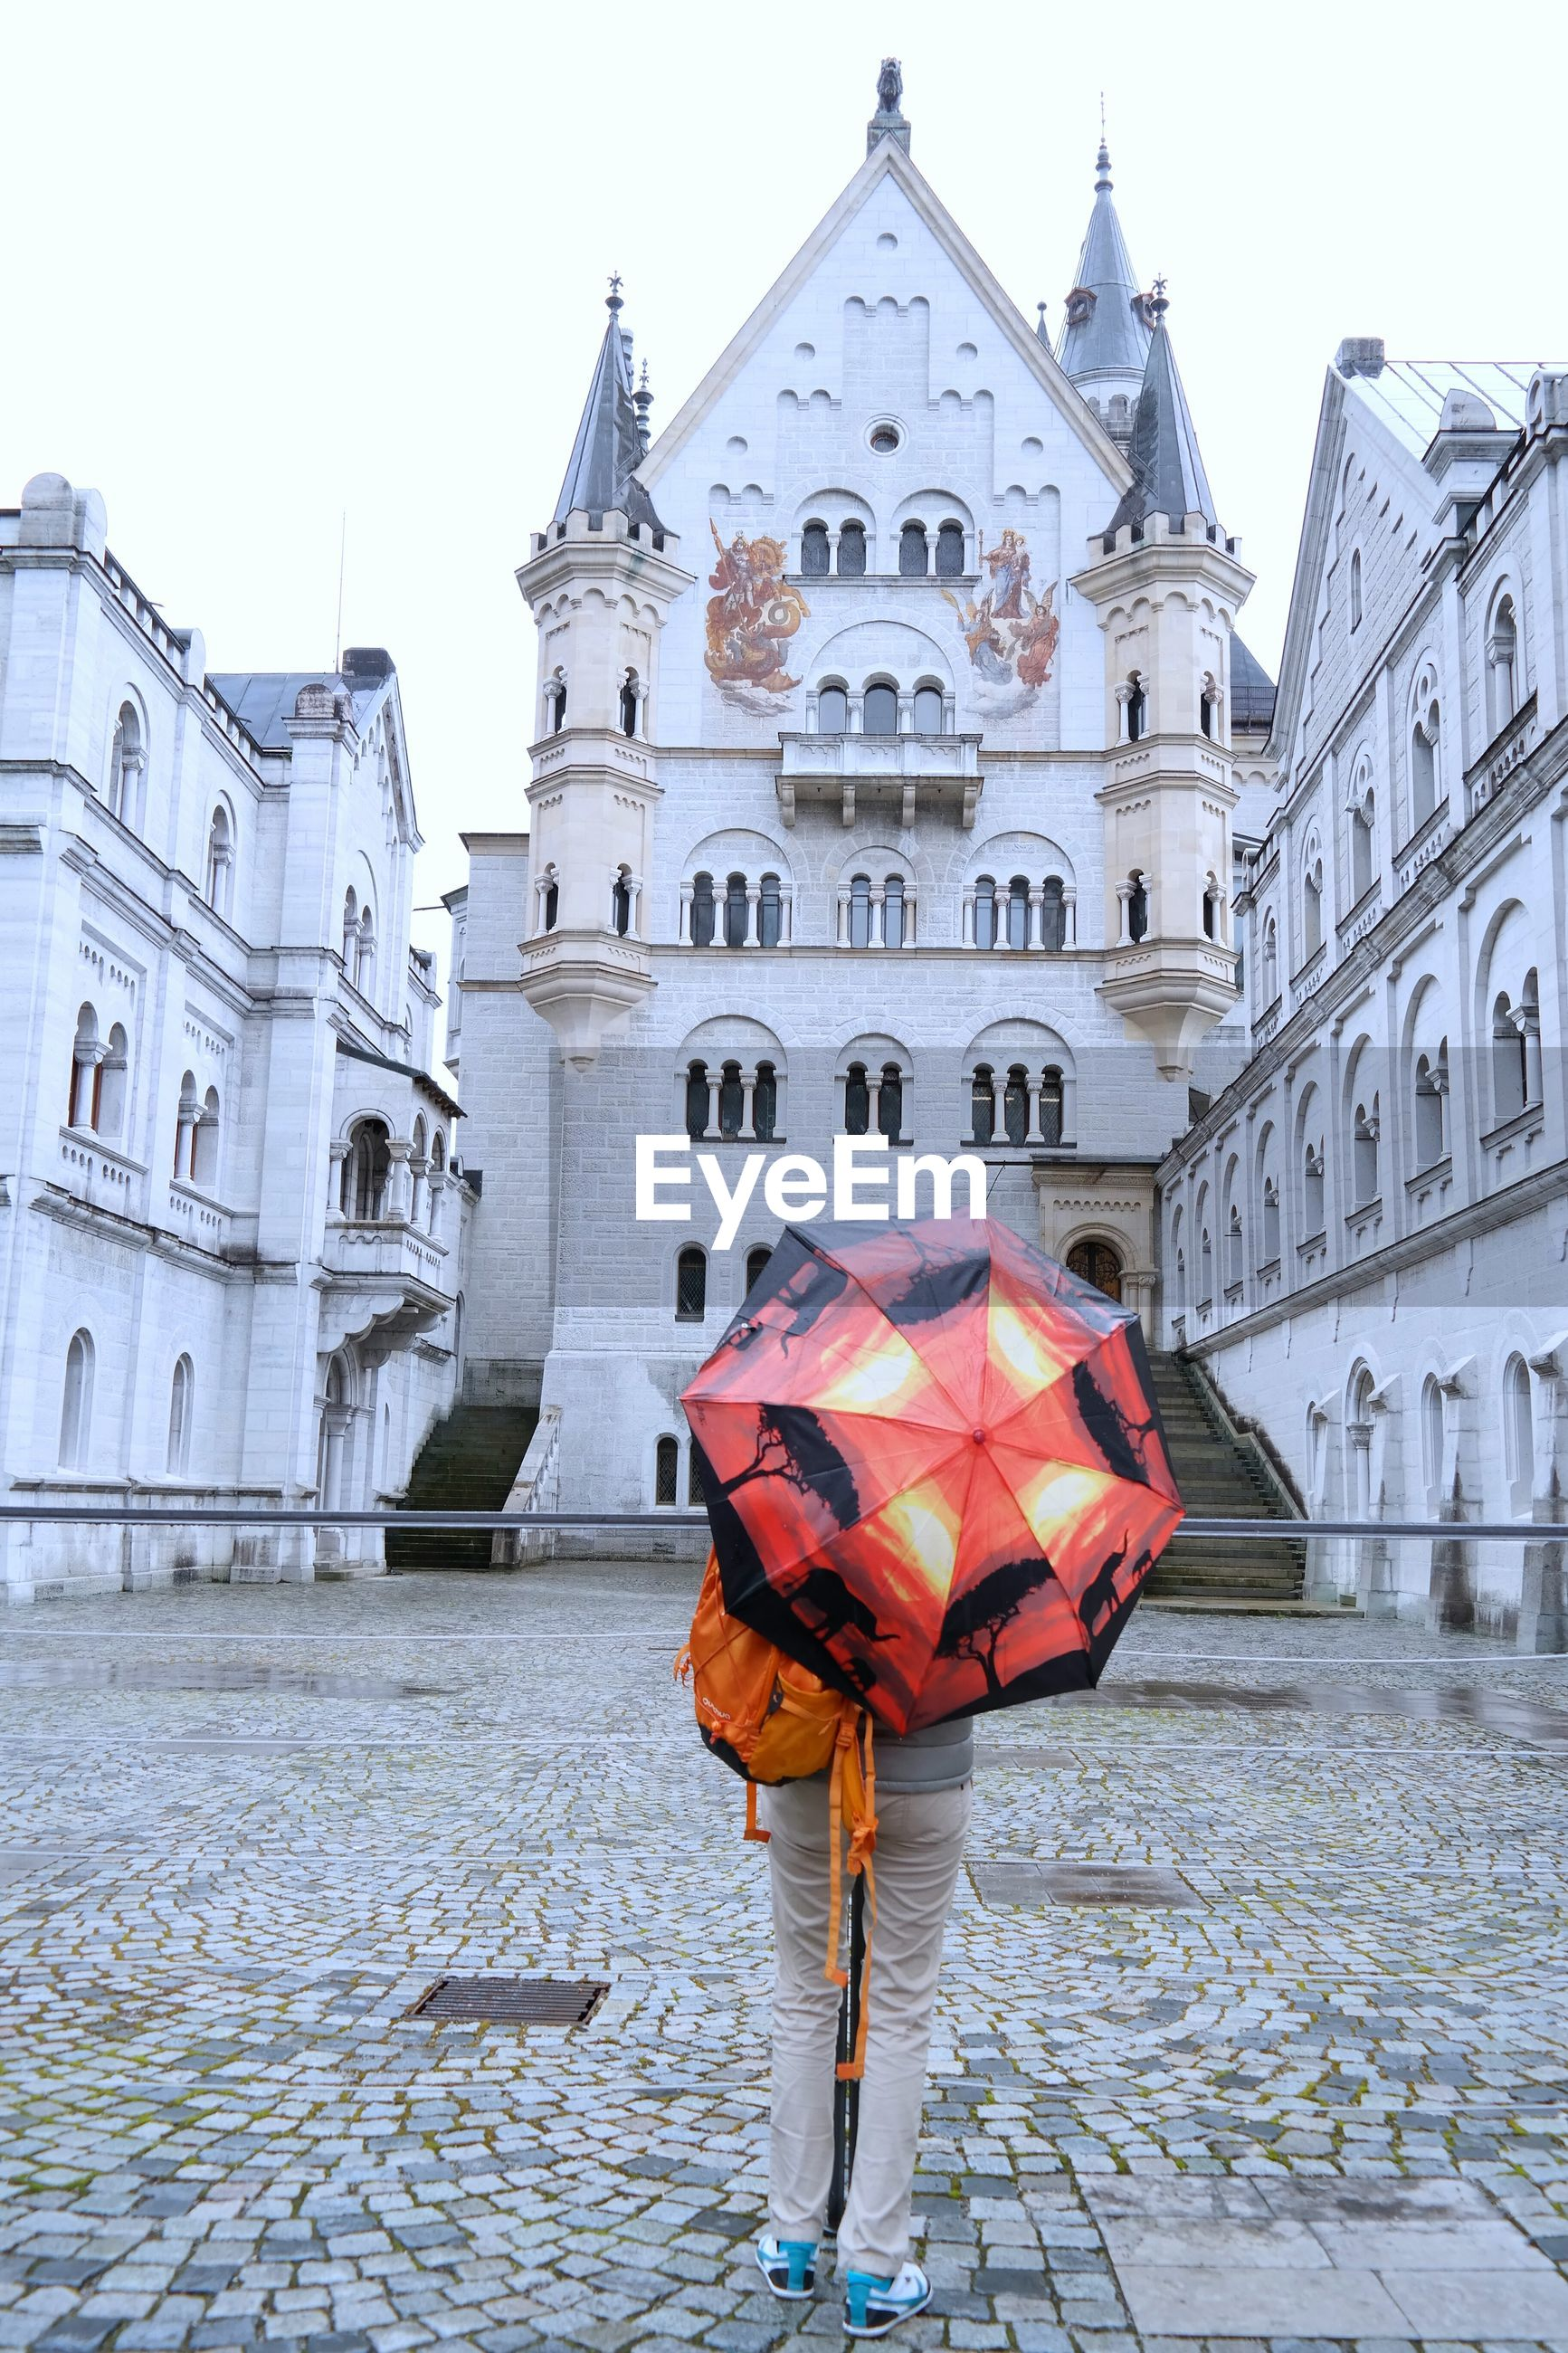 Rear view of person carrying umbrella in front of neuschwanstein castle